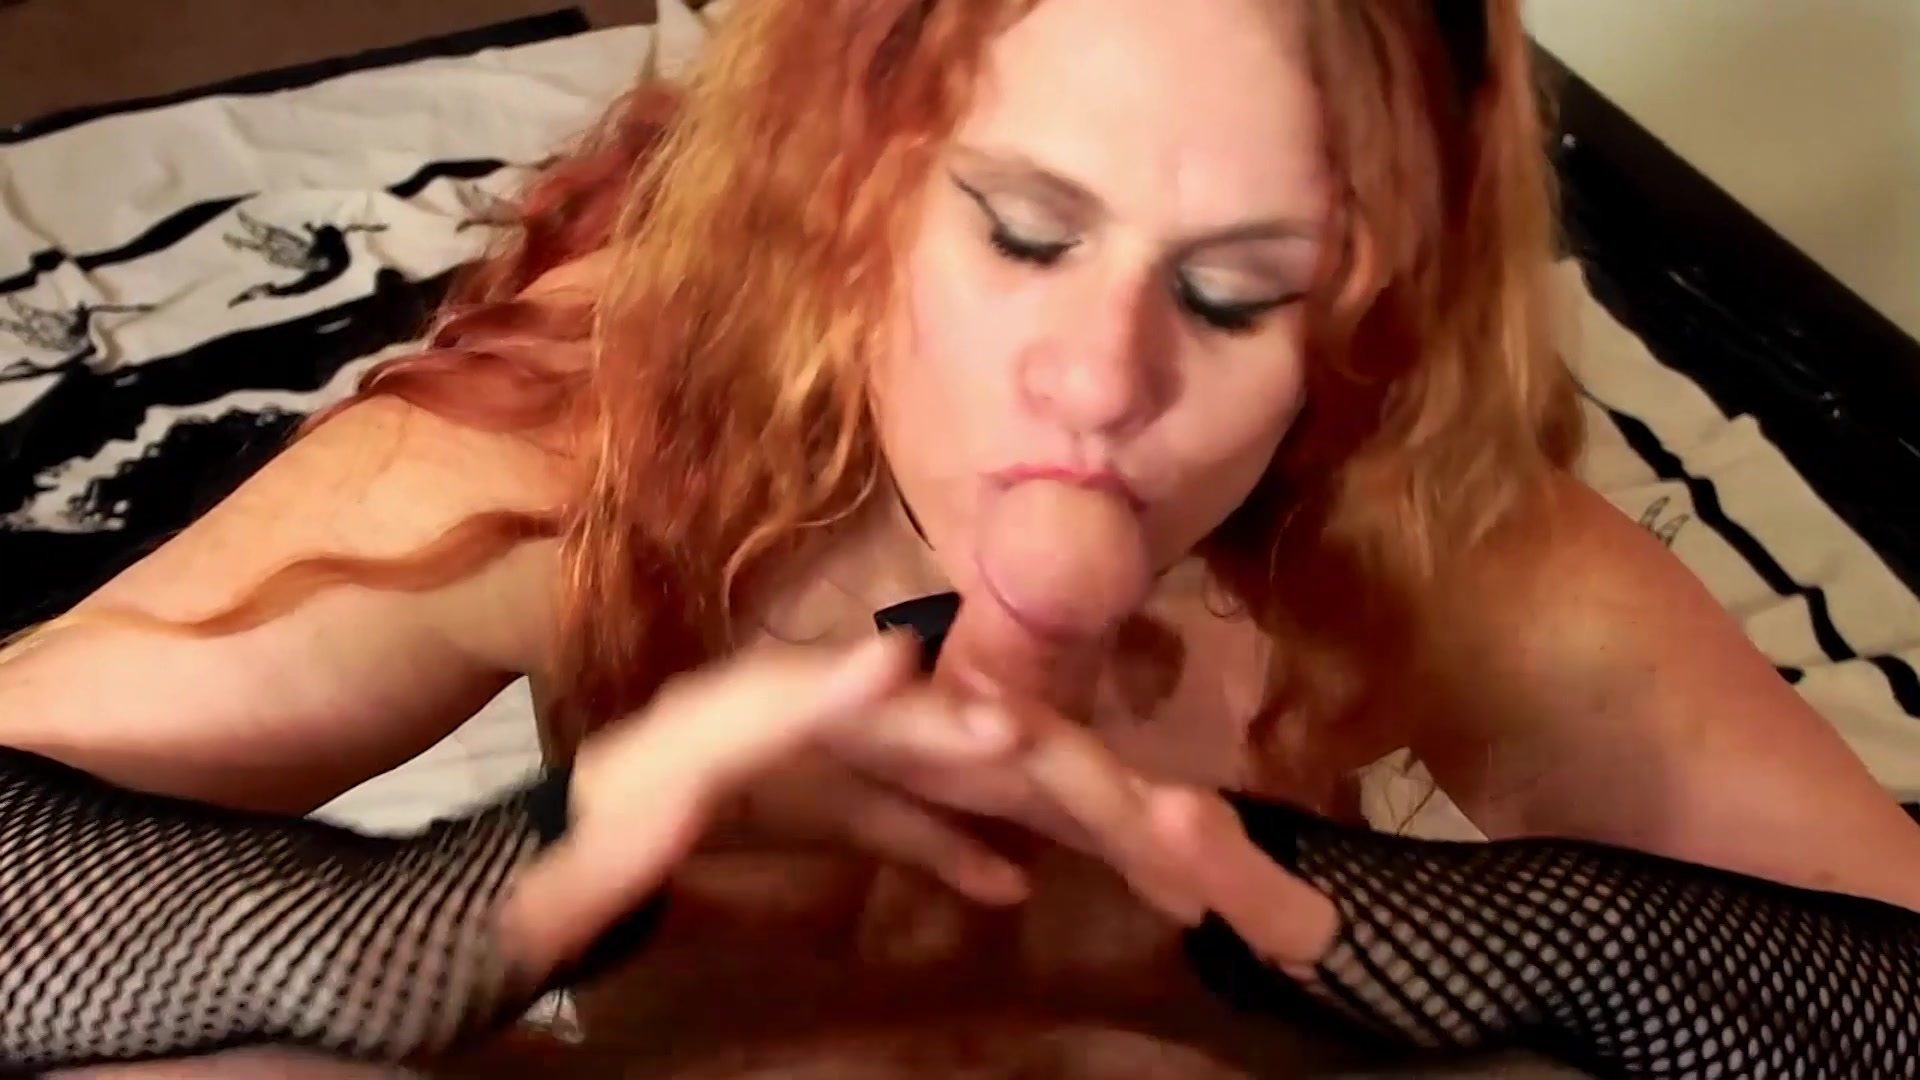 Huge tits kore sucks a huge cock and gets covered in cum